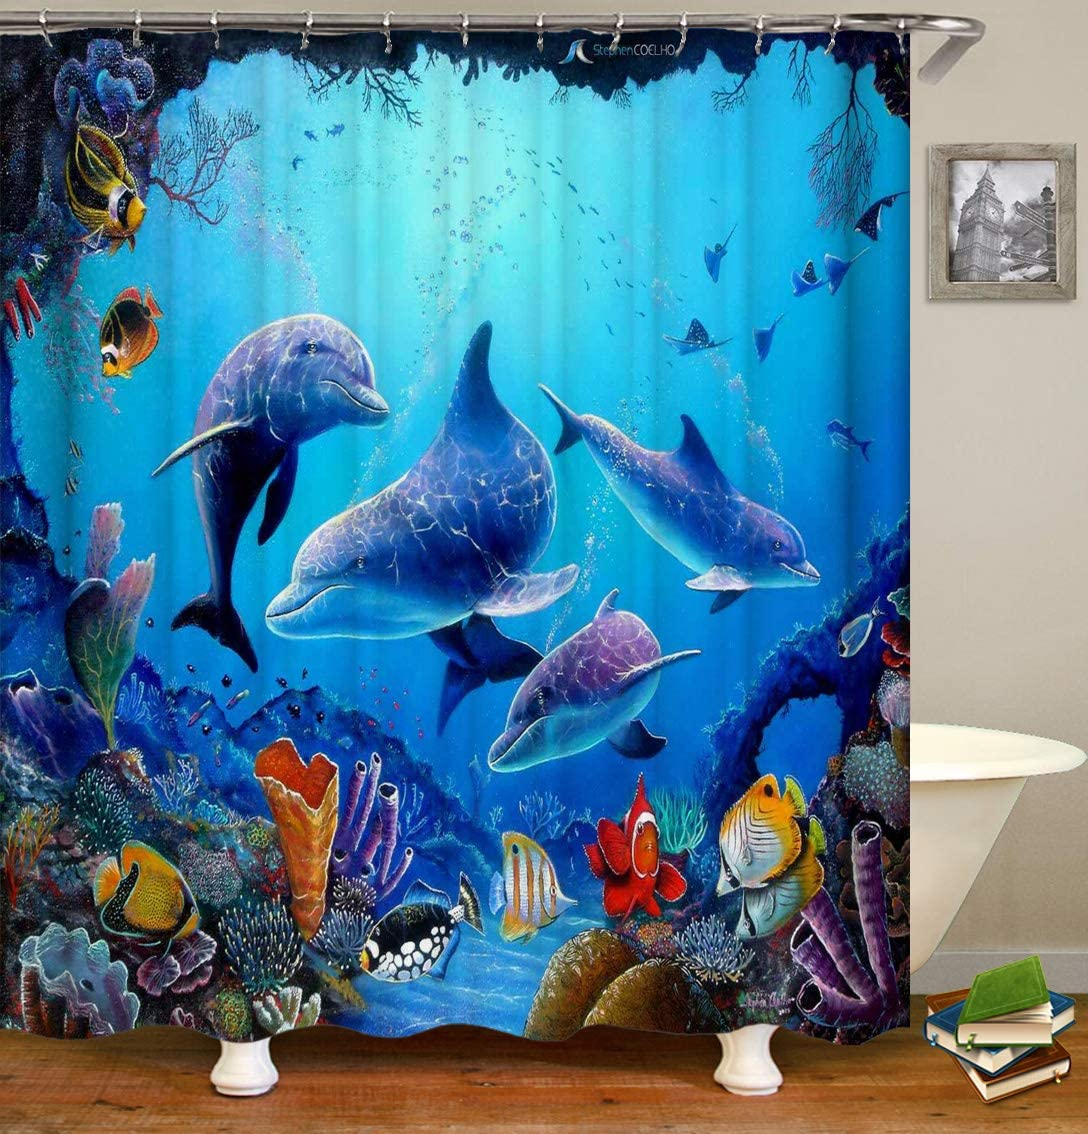 Shocur Dolphin Shower Curtain, Blue Underwater World Happy Marine Life Tropical Fish Algae Coral Reef, 72 x 72 Inches Kids Ocean Theme Bath Curtain, Polyester Fabric Bathroom Decor Set with 12 Hooks